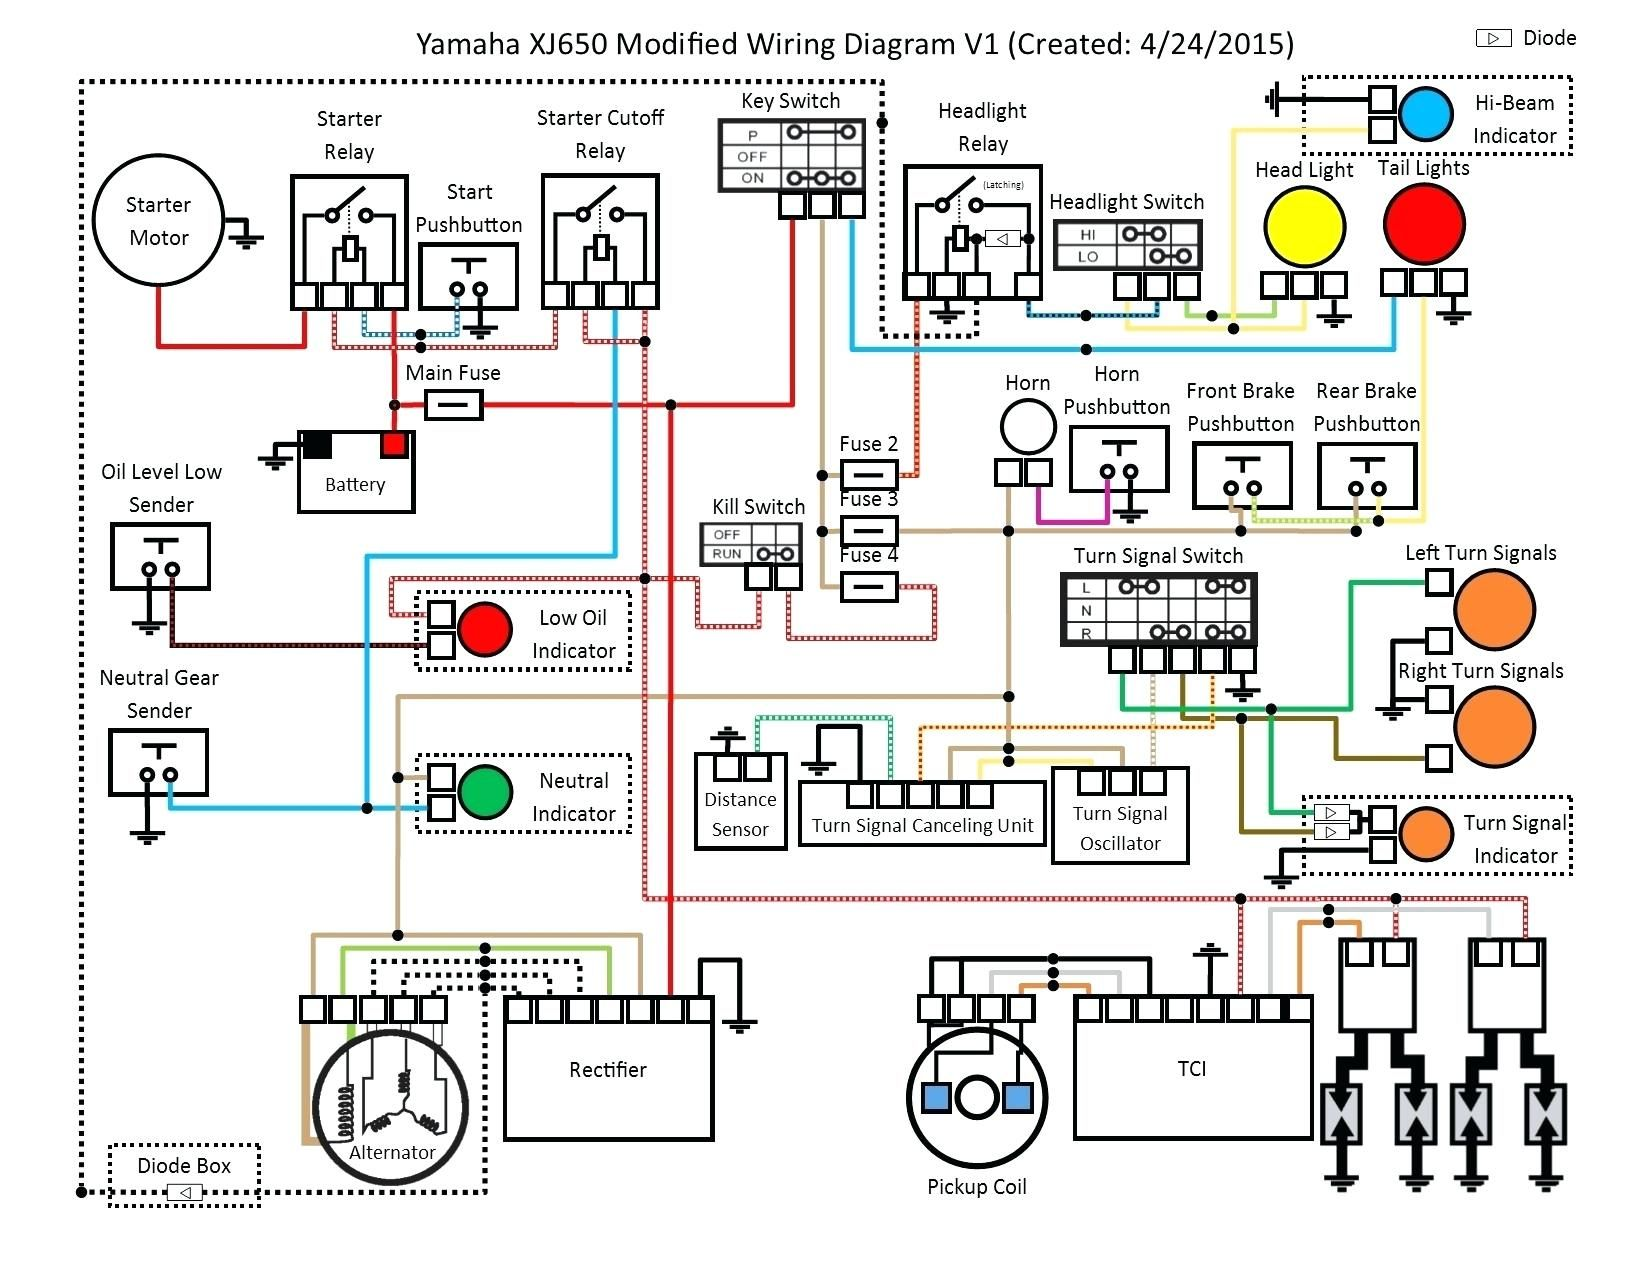 Marvelous Honda Xrm 125 Electrical Wiring Diagram Lukaszmira Com At Gg Wiring 101 Capemaxxcnl